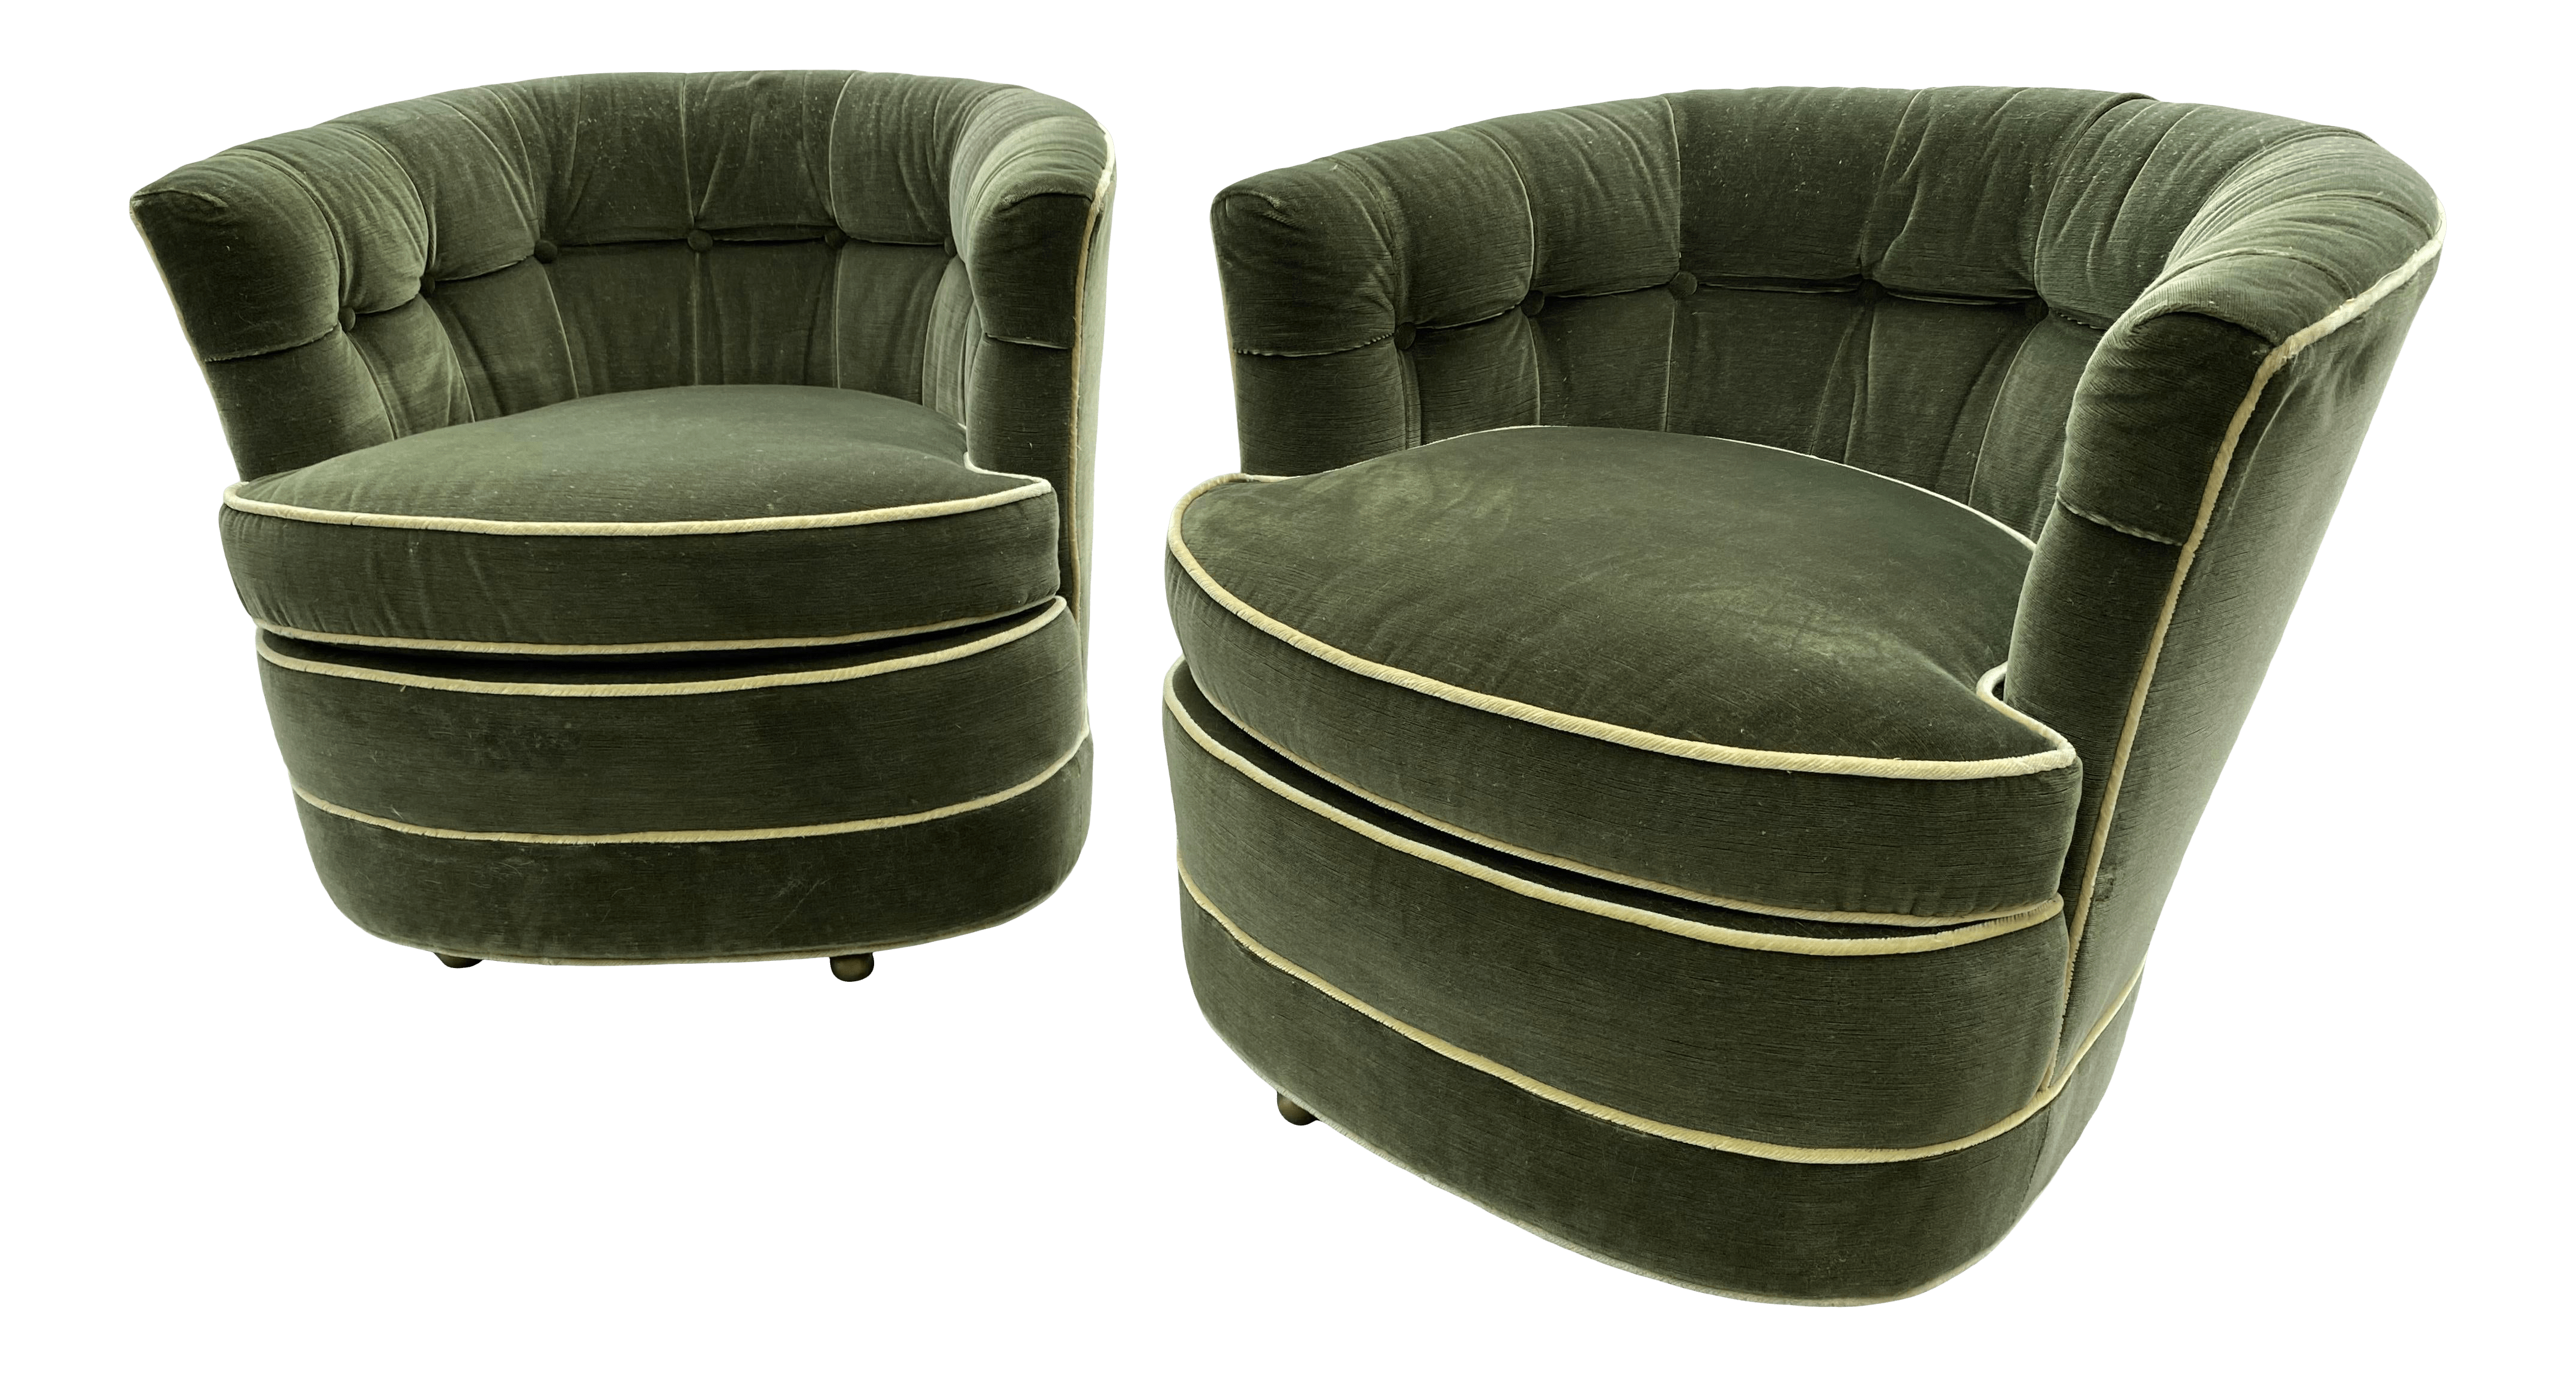 1960s Mid Century Modern Green Velvet Swivel Chairs A Pair Chairish